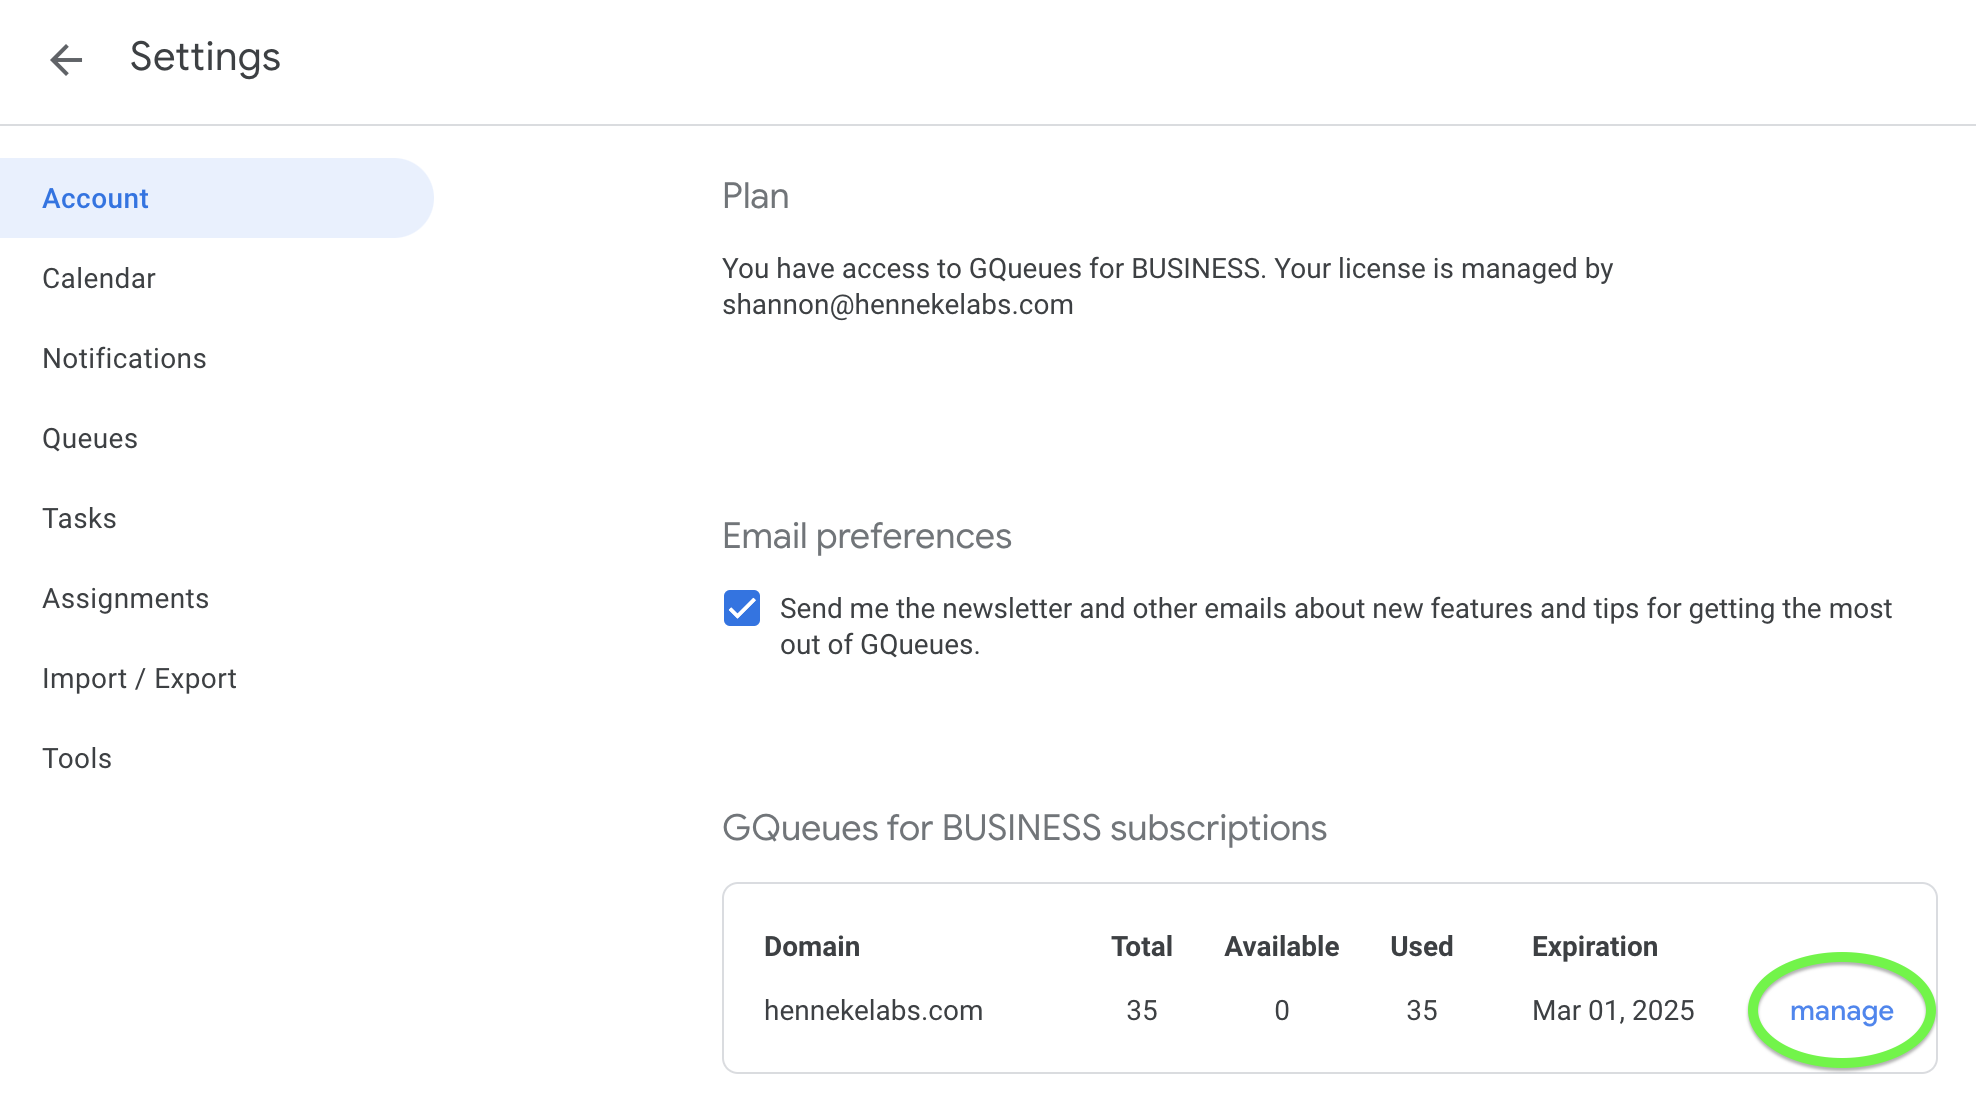 Link to Manage GQueues for BUSINESS subscriptions